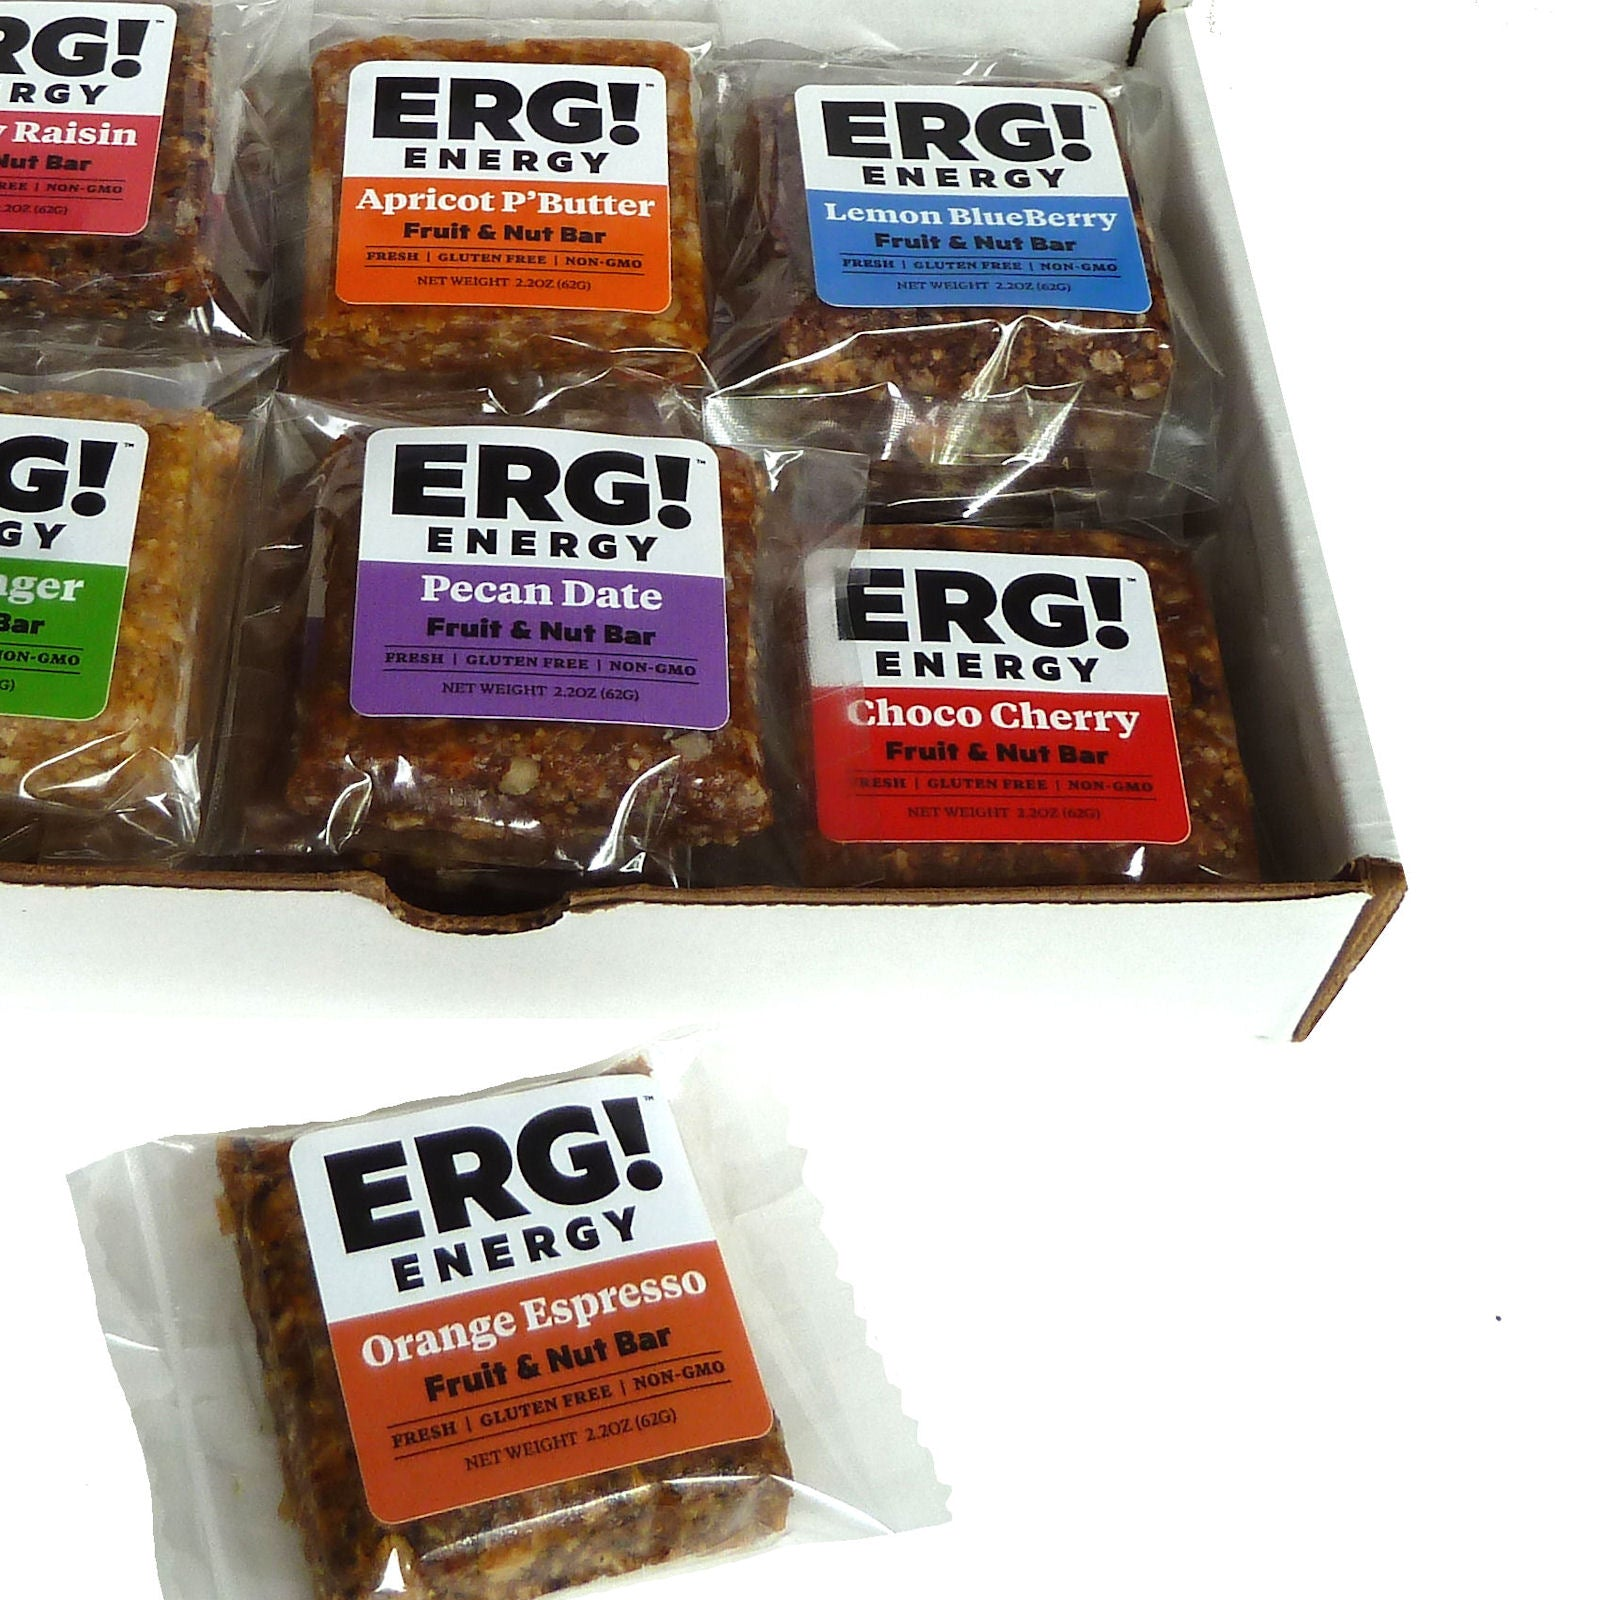 Subscription - 18 ERG! Bars Each Month for 3 Months